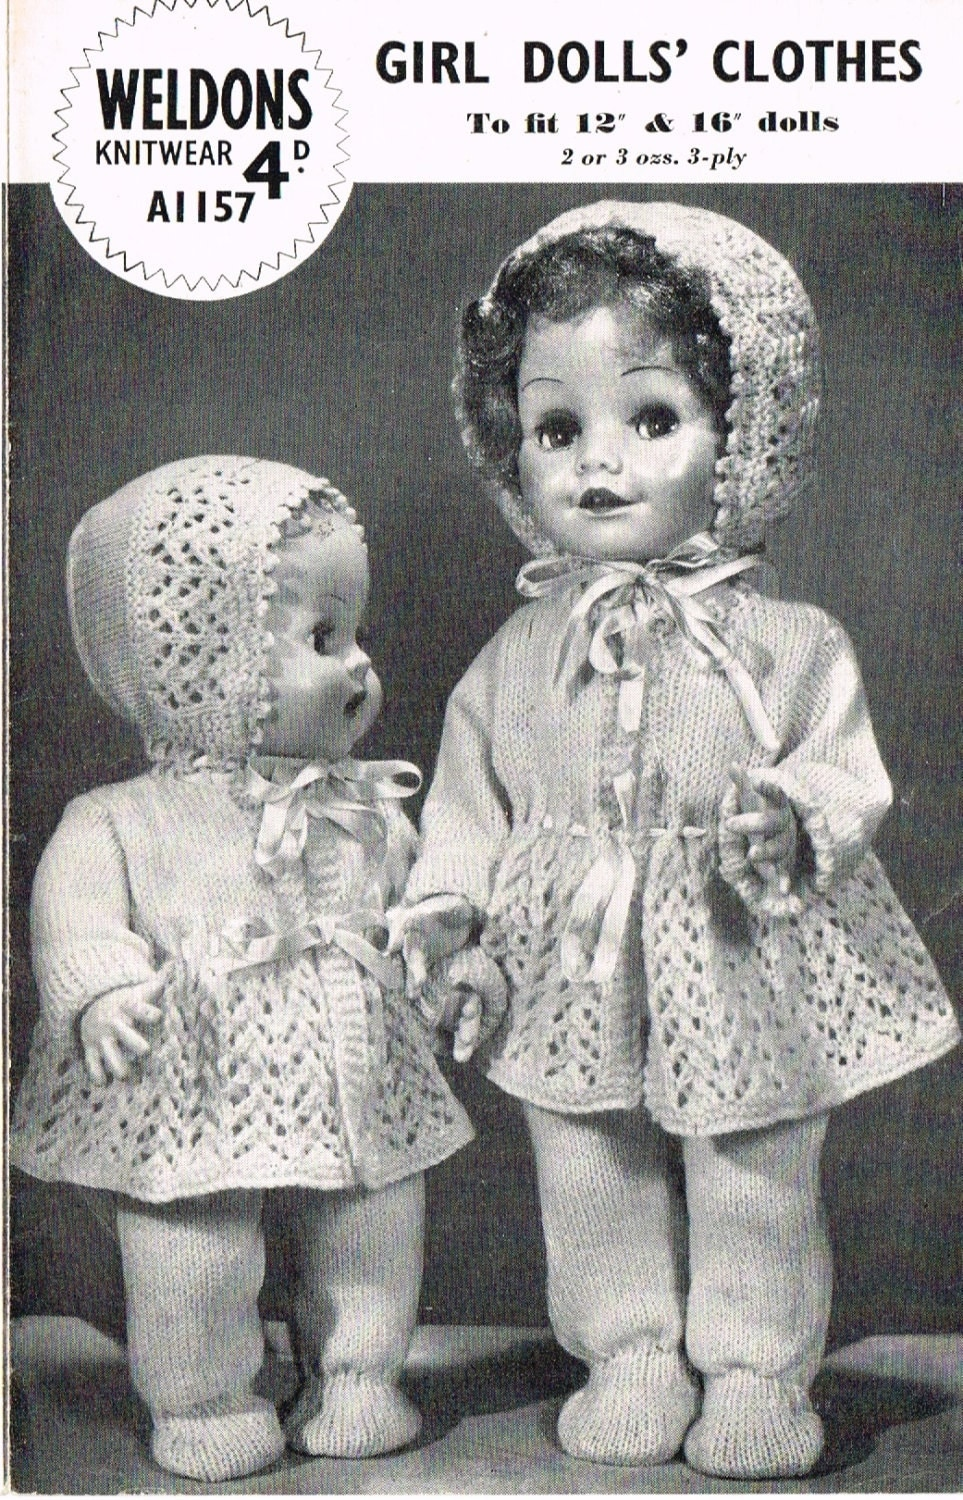 Knitting Patterns For Dolls Clothes 12 Inch : Dolls clothes knitting pattern.12 & 16 doll. Baby